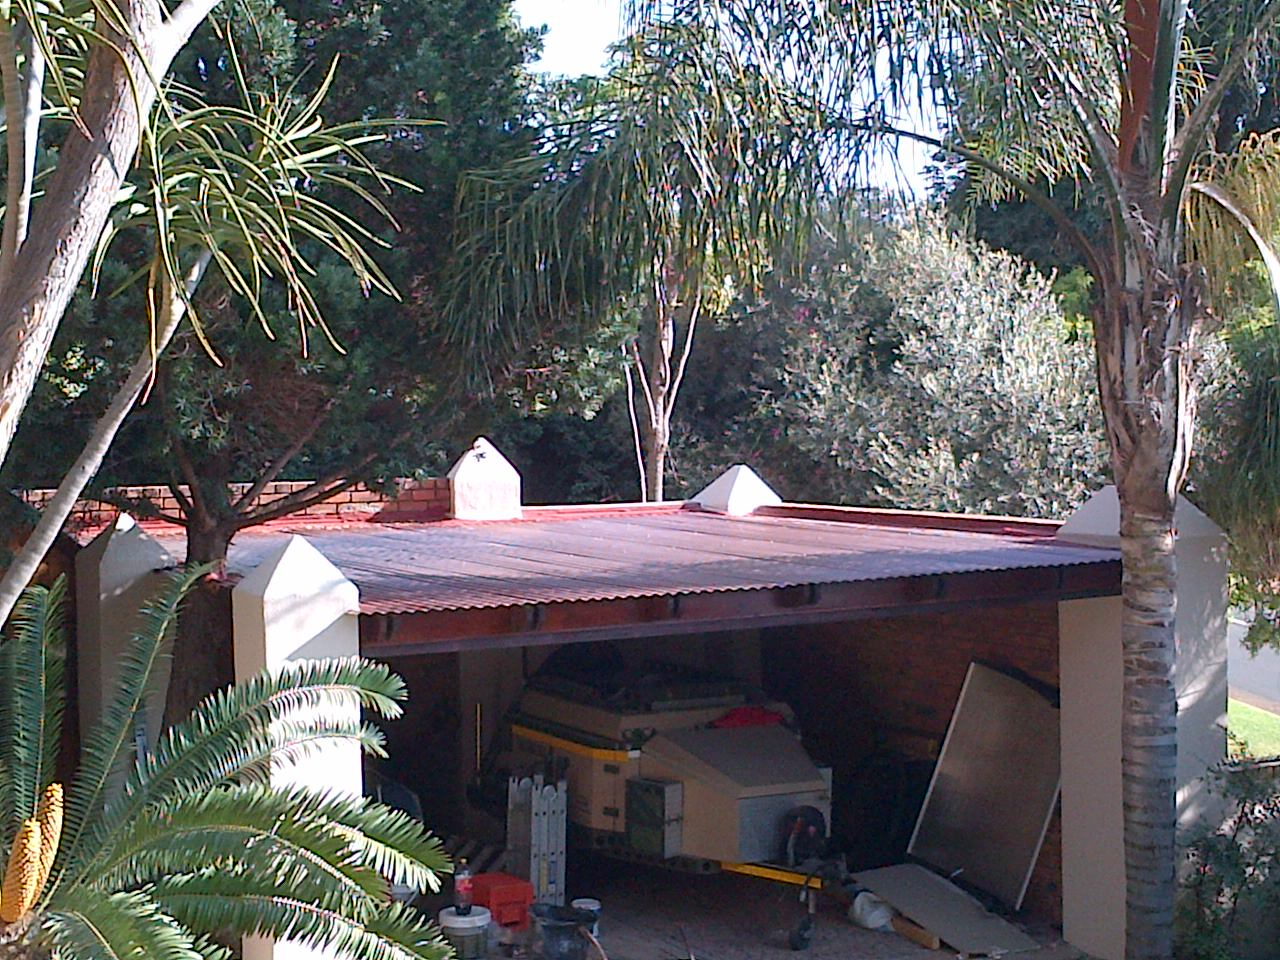 12GRHS-handyman-service-for-roof-replace-with-chromodec